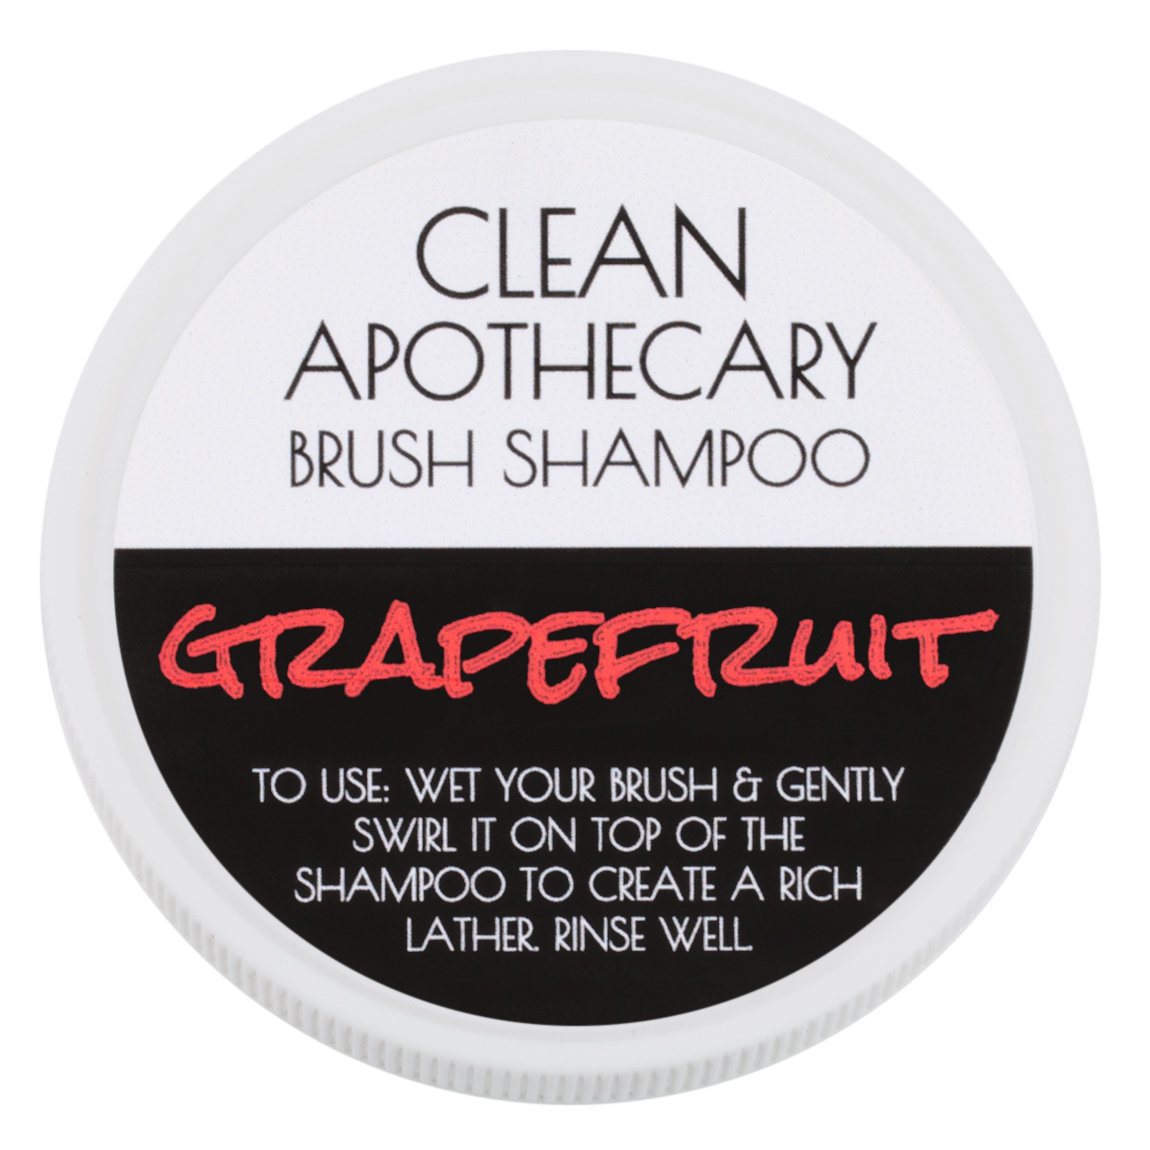 Clean Apothecary Brush Shampoo Grapefruit product smear.